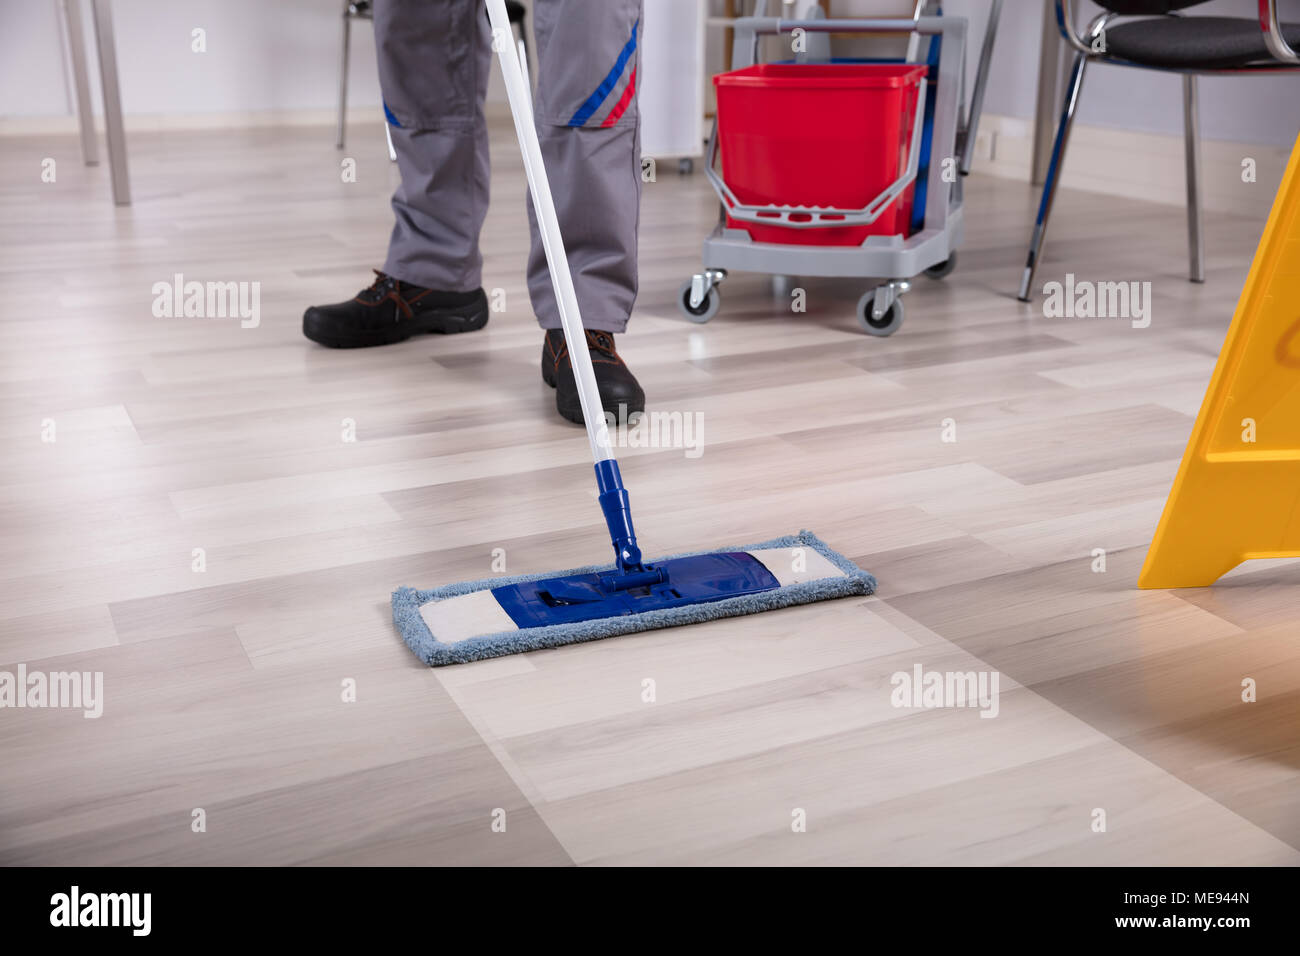 Cleaner Cleaning Hardwood Floor With Mop At Workplace - Stock Image